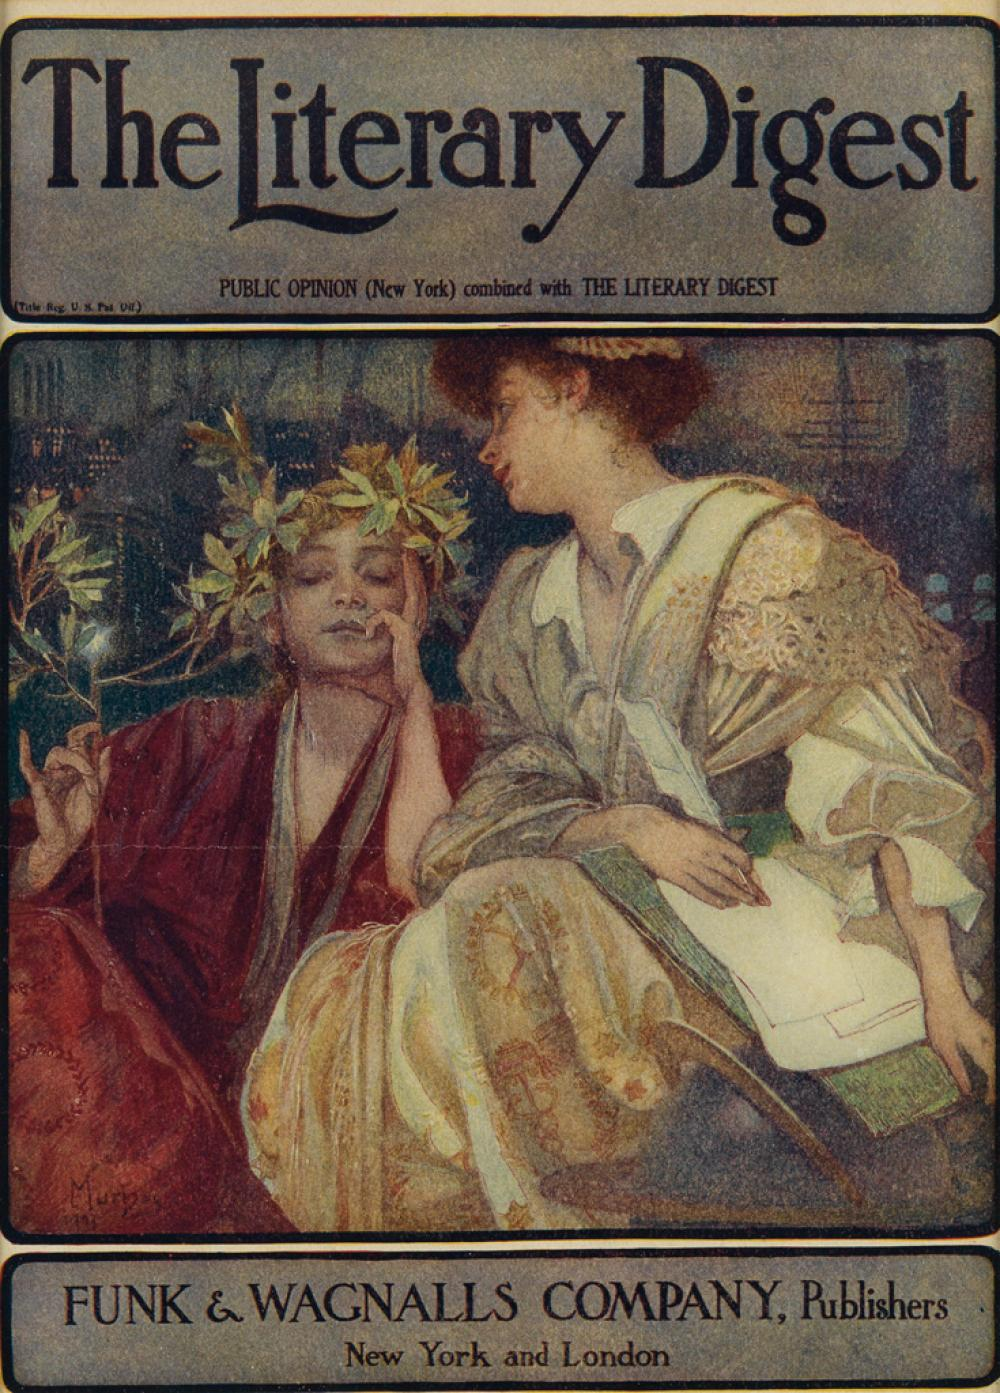 ALPHONSE MUCHA (1860-1939). THE LITERARY DIGEST. Magazine cover. 1910. 11x8 inches, 29x21 cm. Funk & Wagnall''s Company, New York.